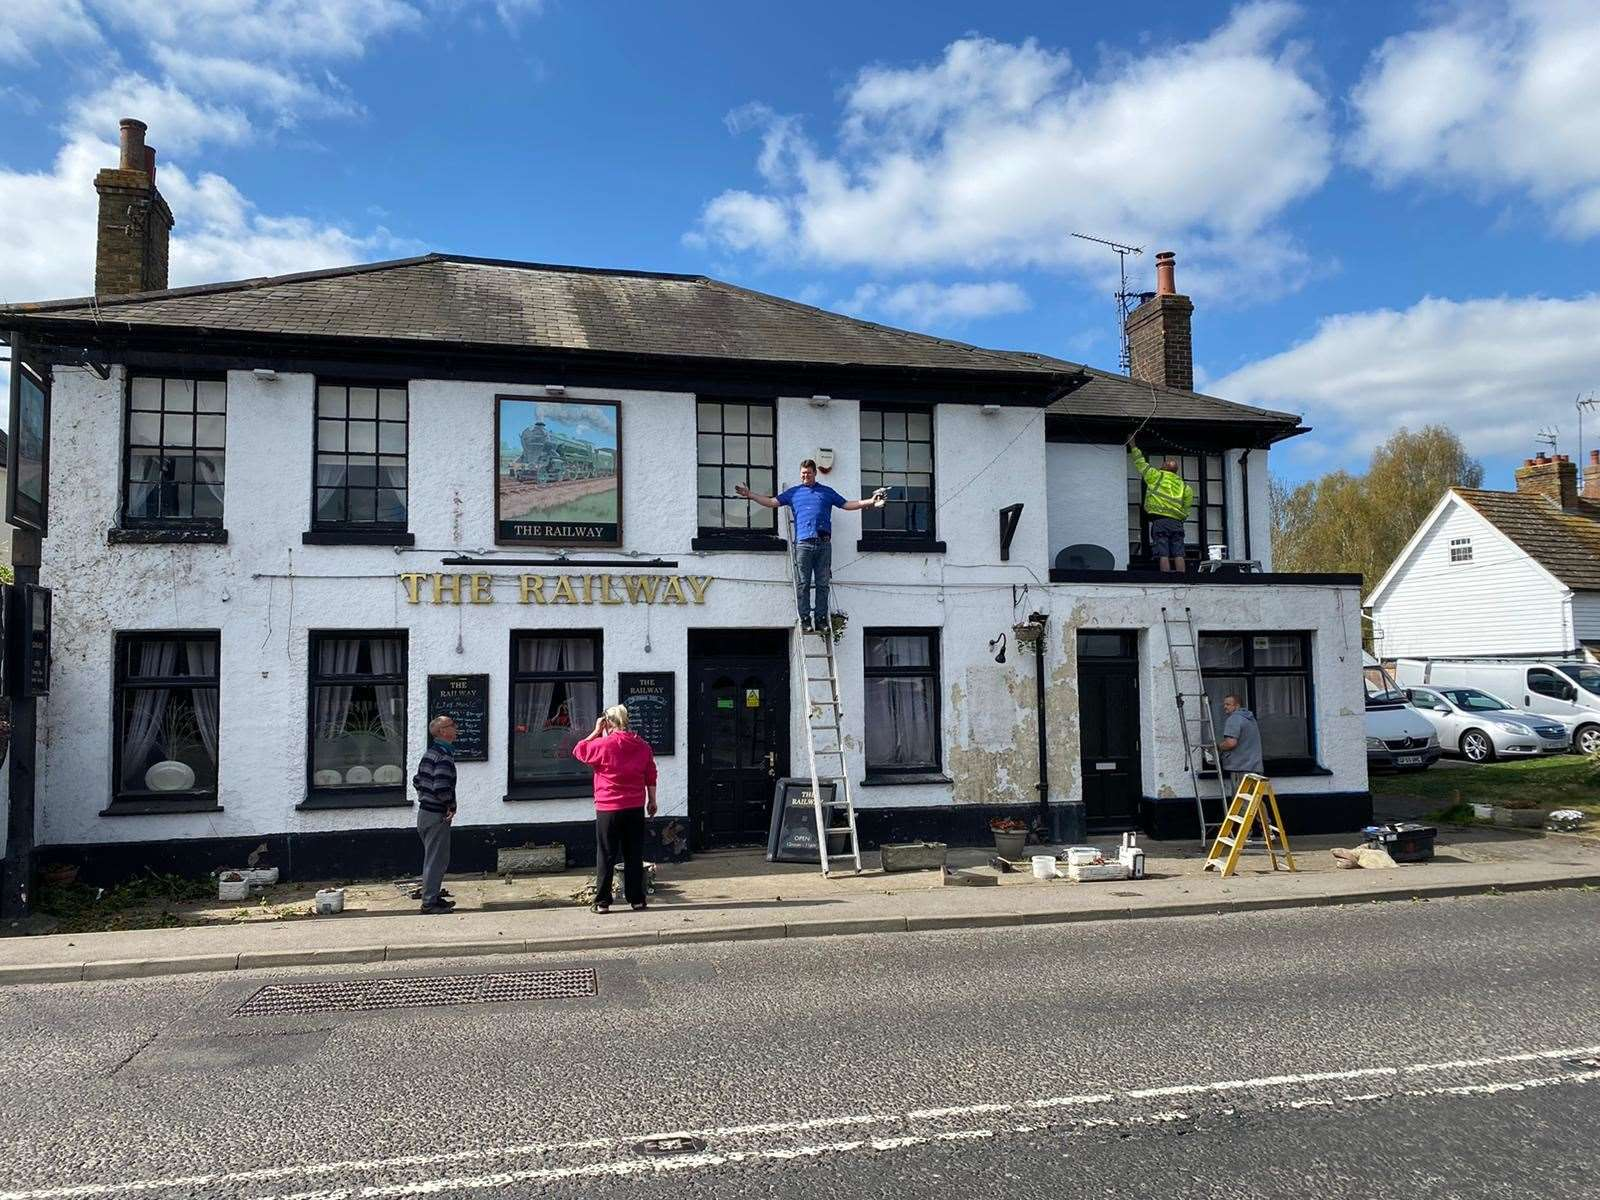 The Railway pub before its makeover Picture: Suzie Goad